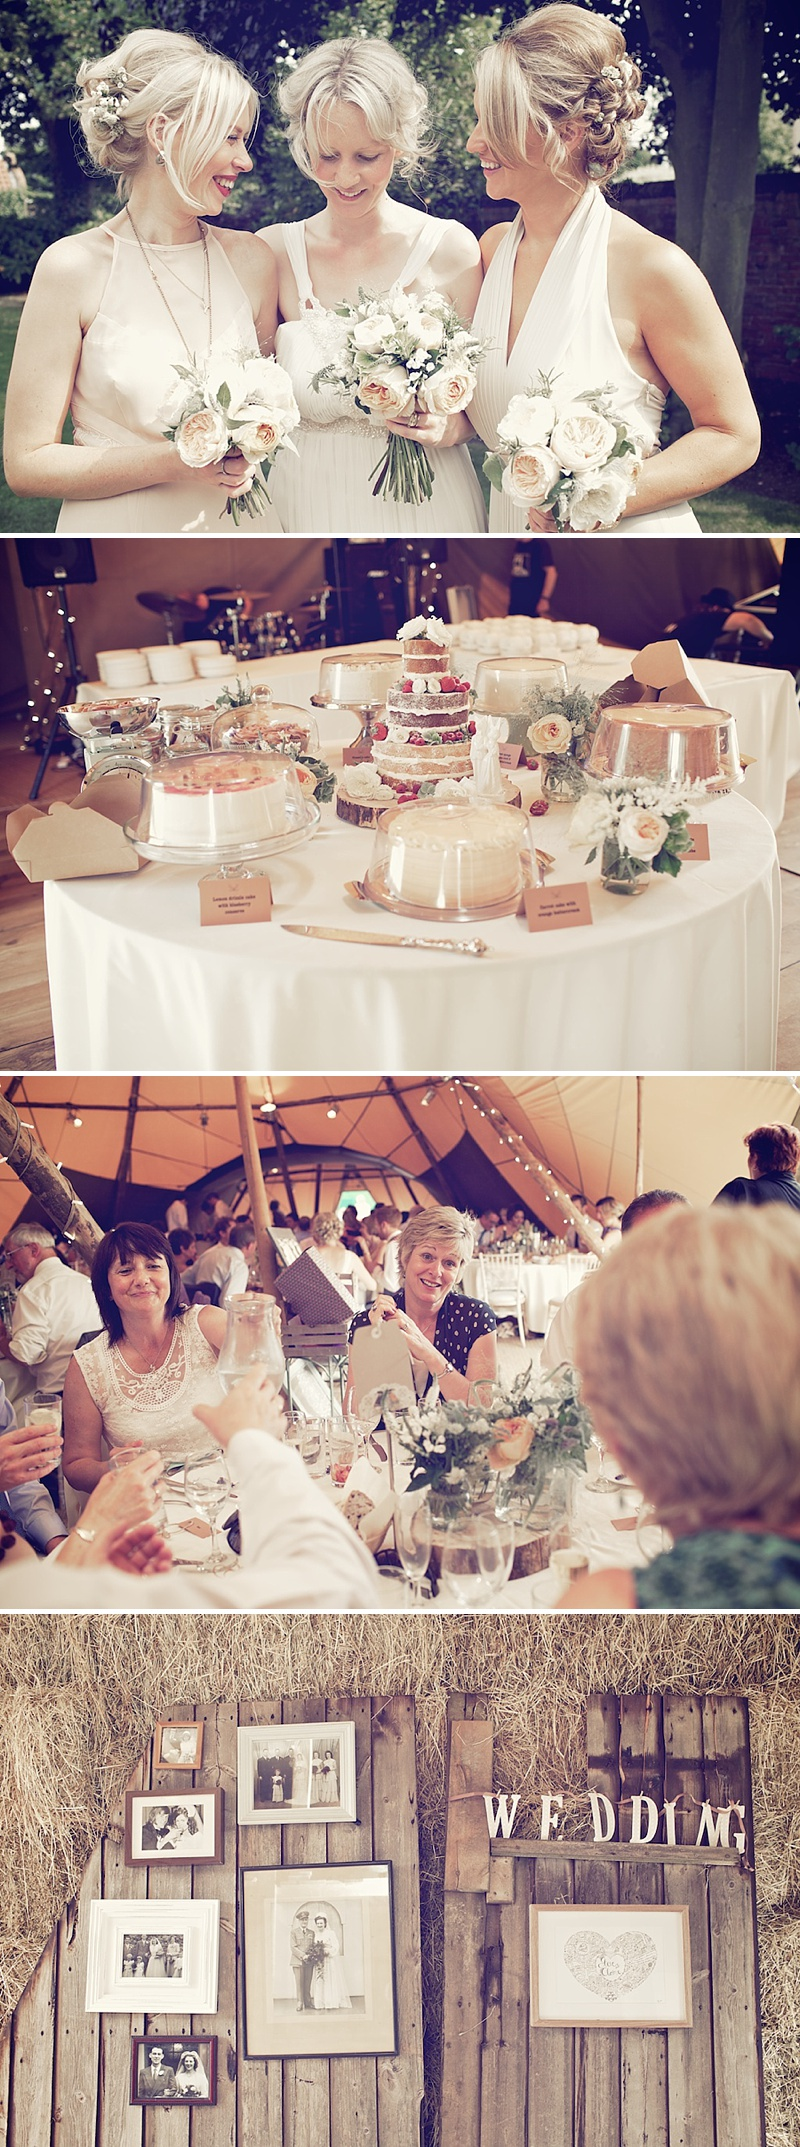 An english country backgarden humanist wedding with Biba dress tipi reception_0012